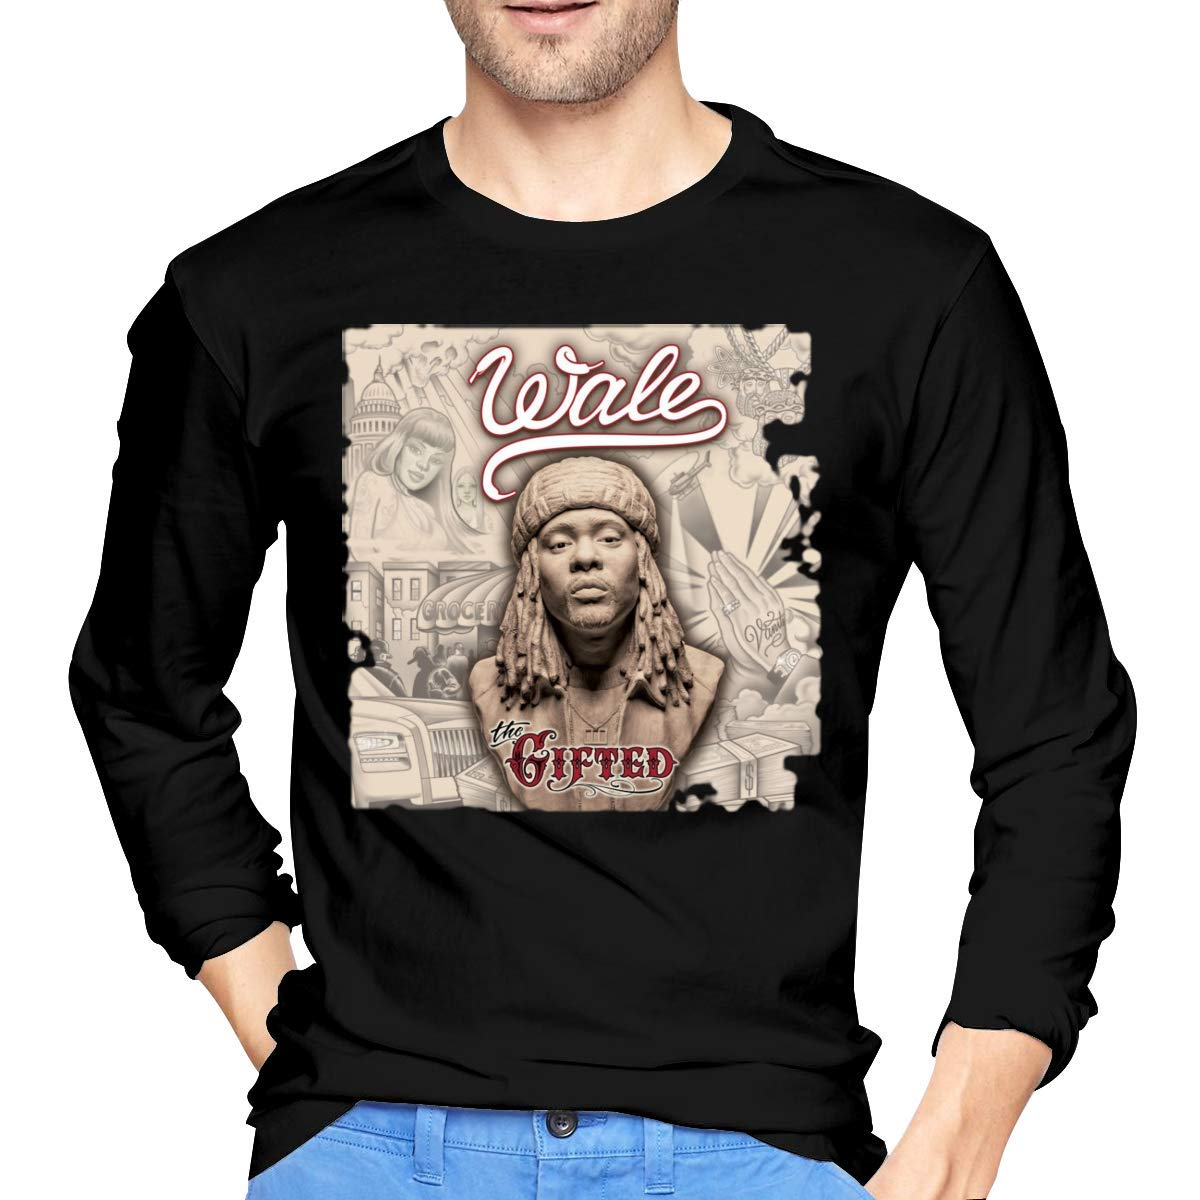 Fssatung S Wale The Gifted Tshirts Black